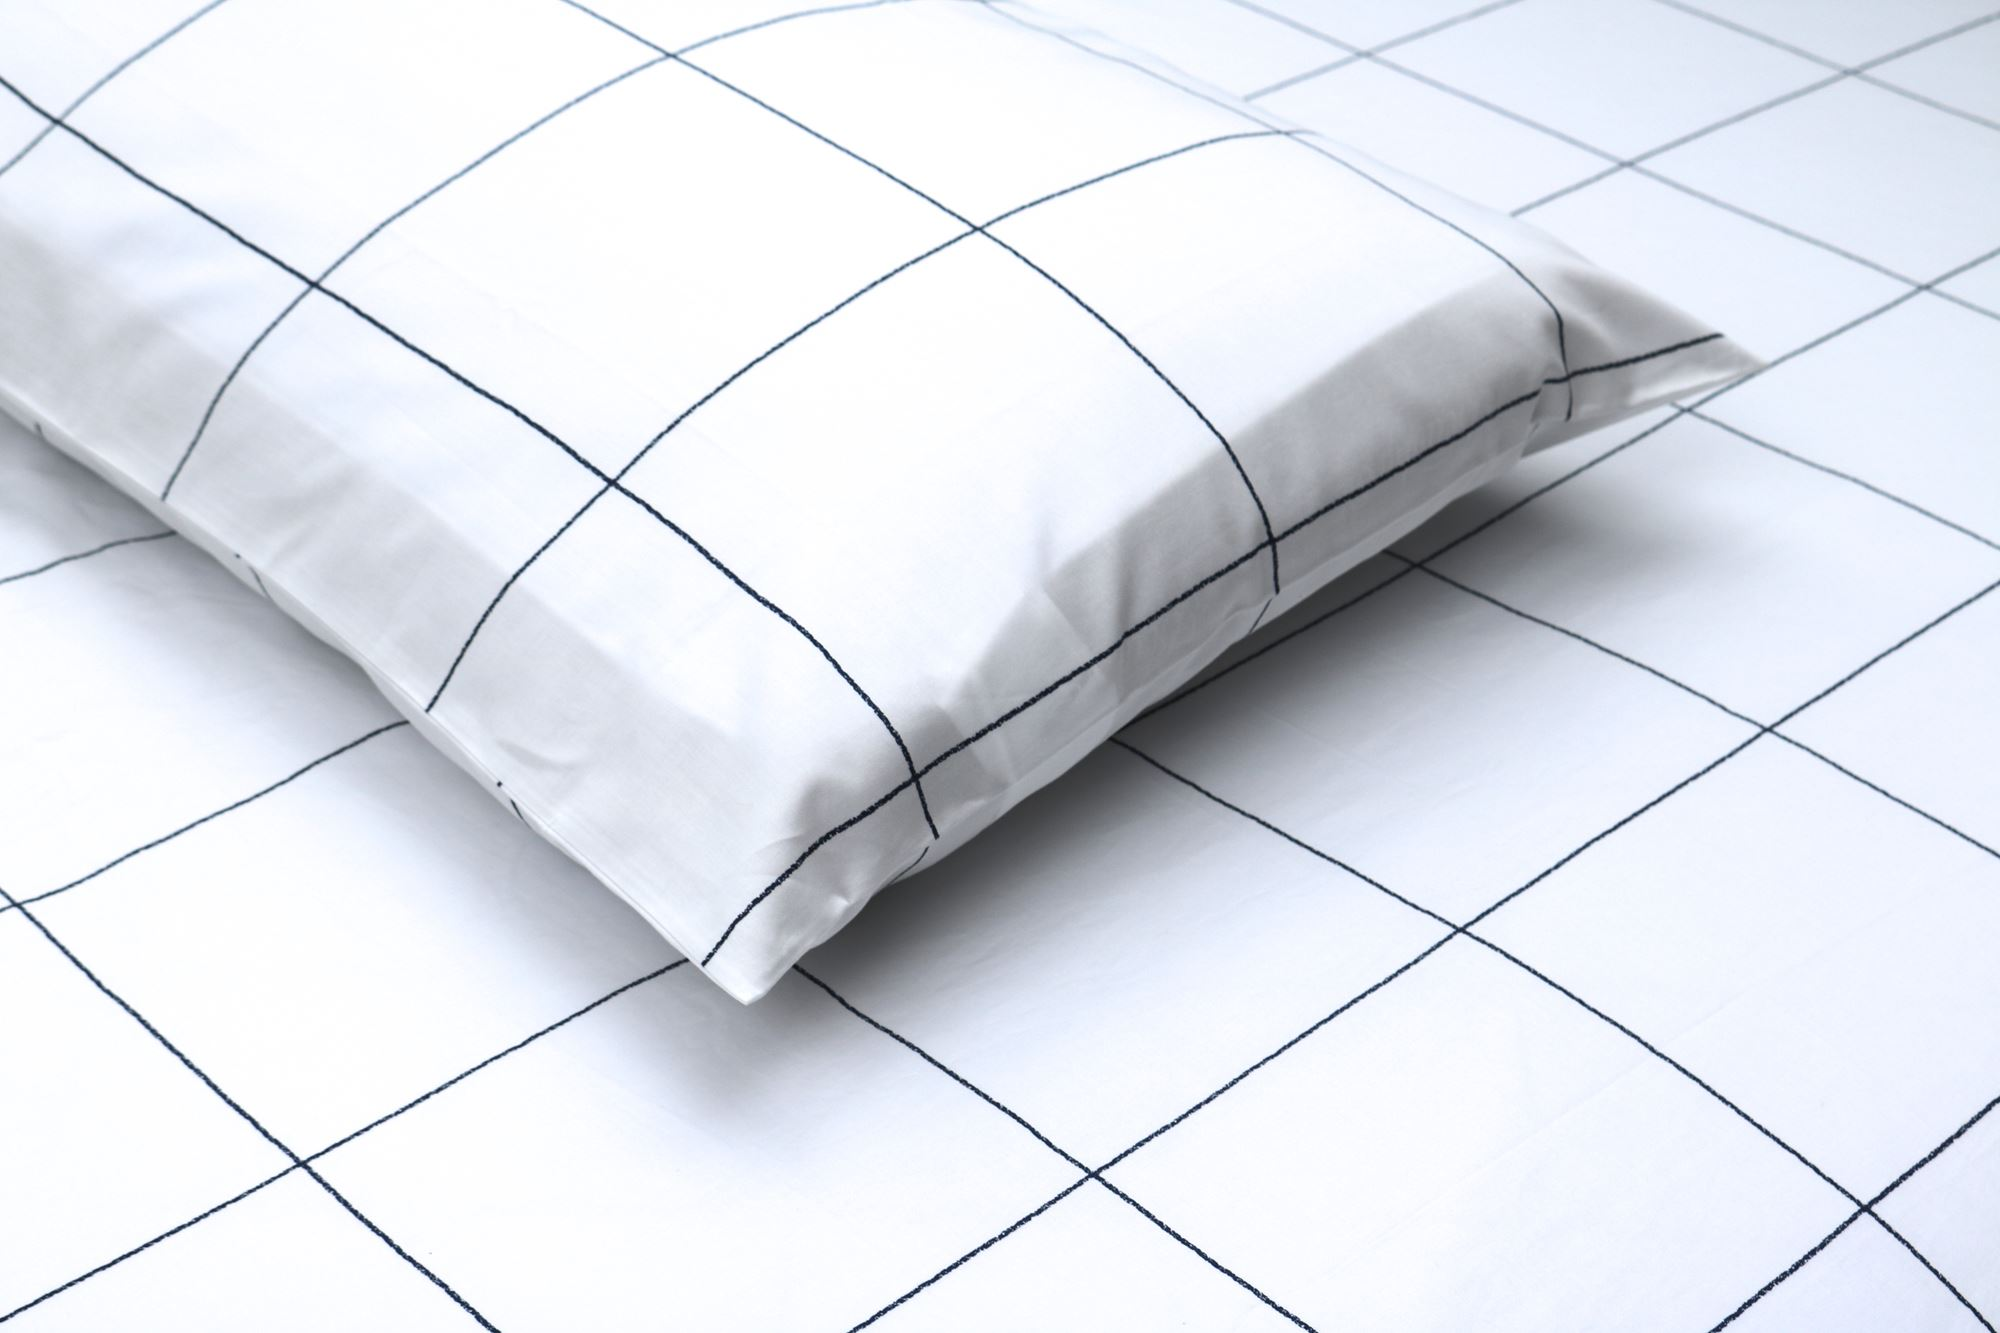 0001700_sheet-set-window-pane.jpeg